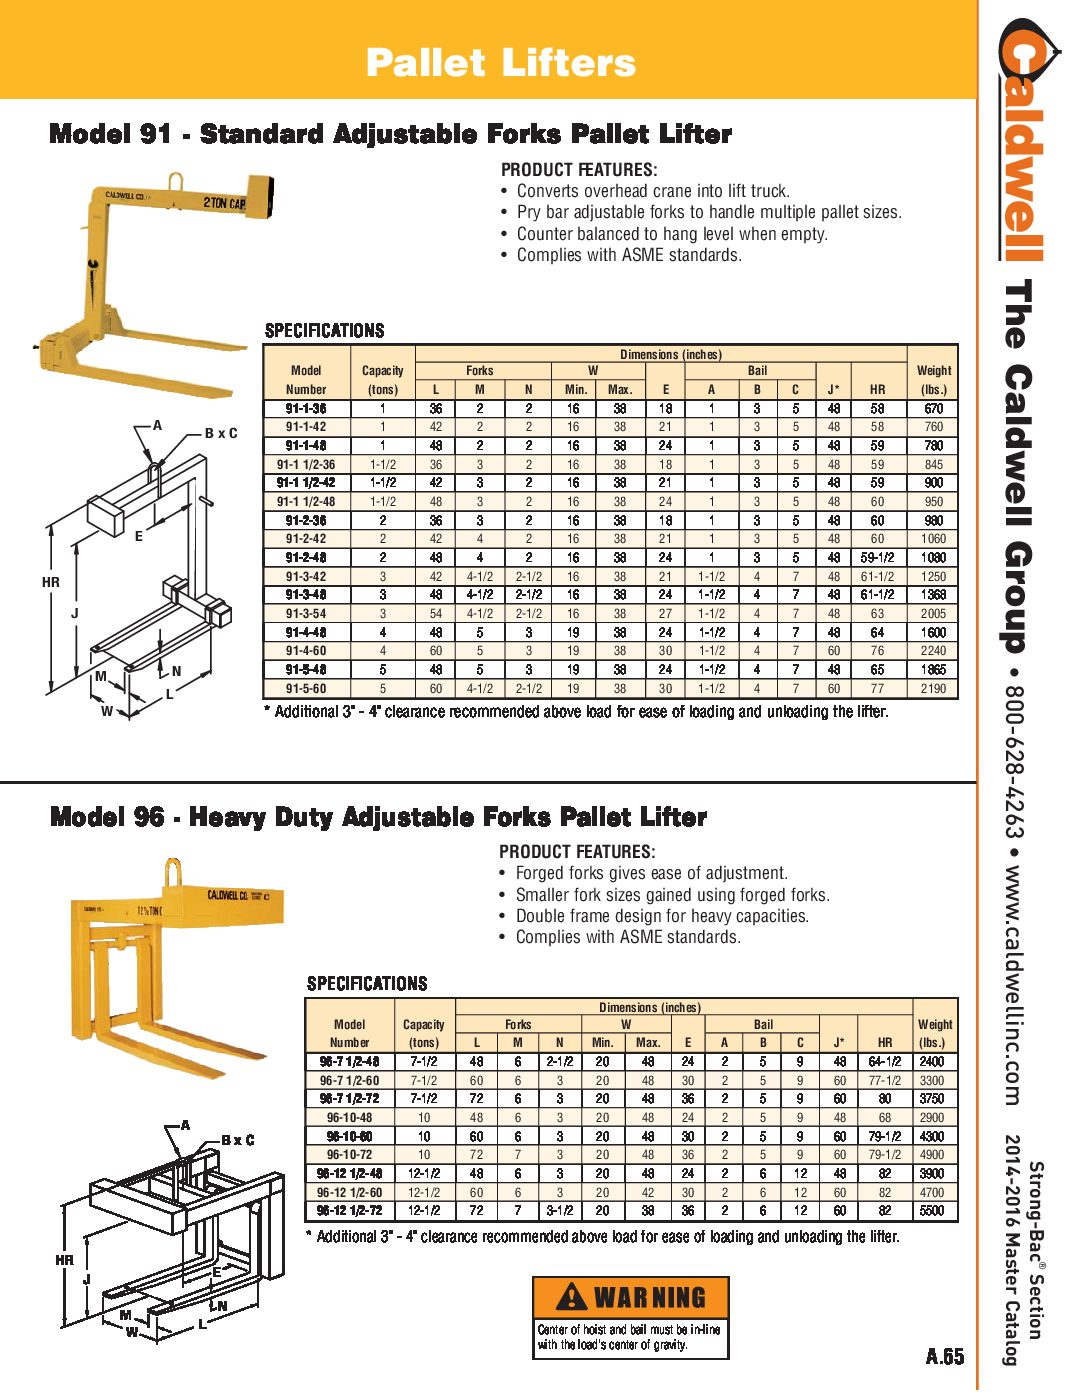 Caldwell STRONG BAC Heavy Duty Adjustable Forks Pallet Lifter Spread Sheet pdf